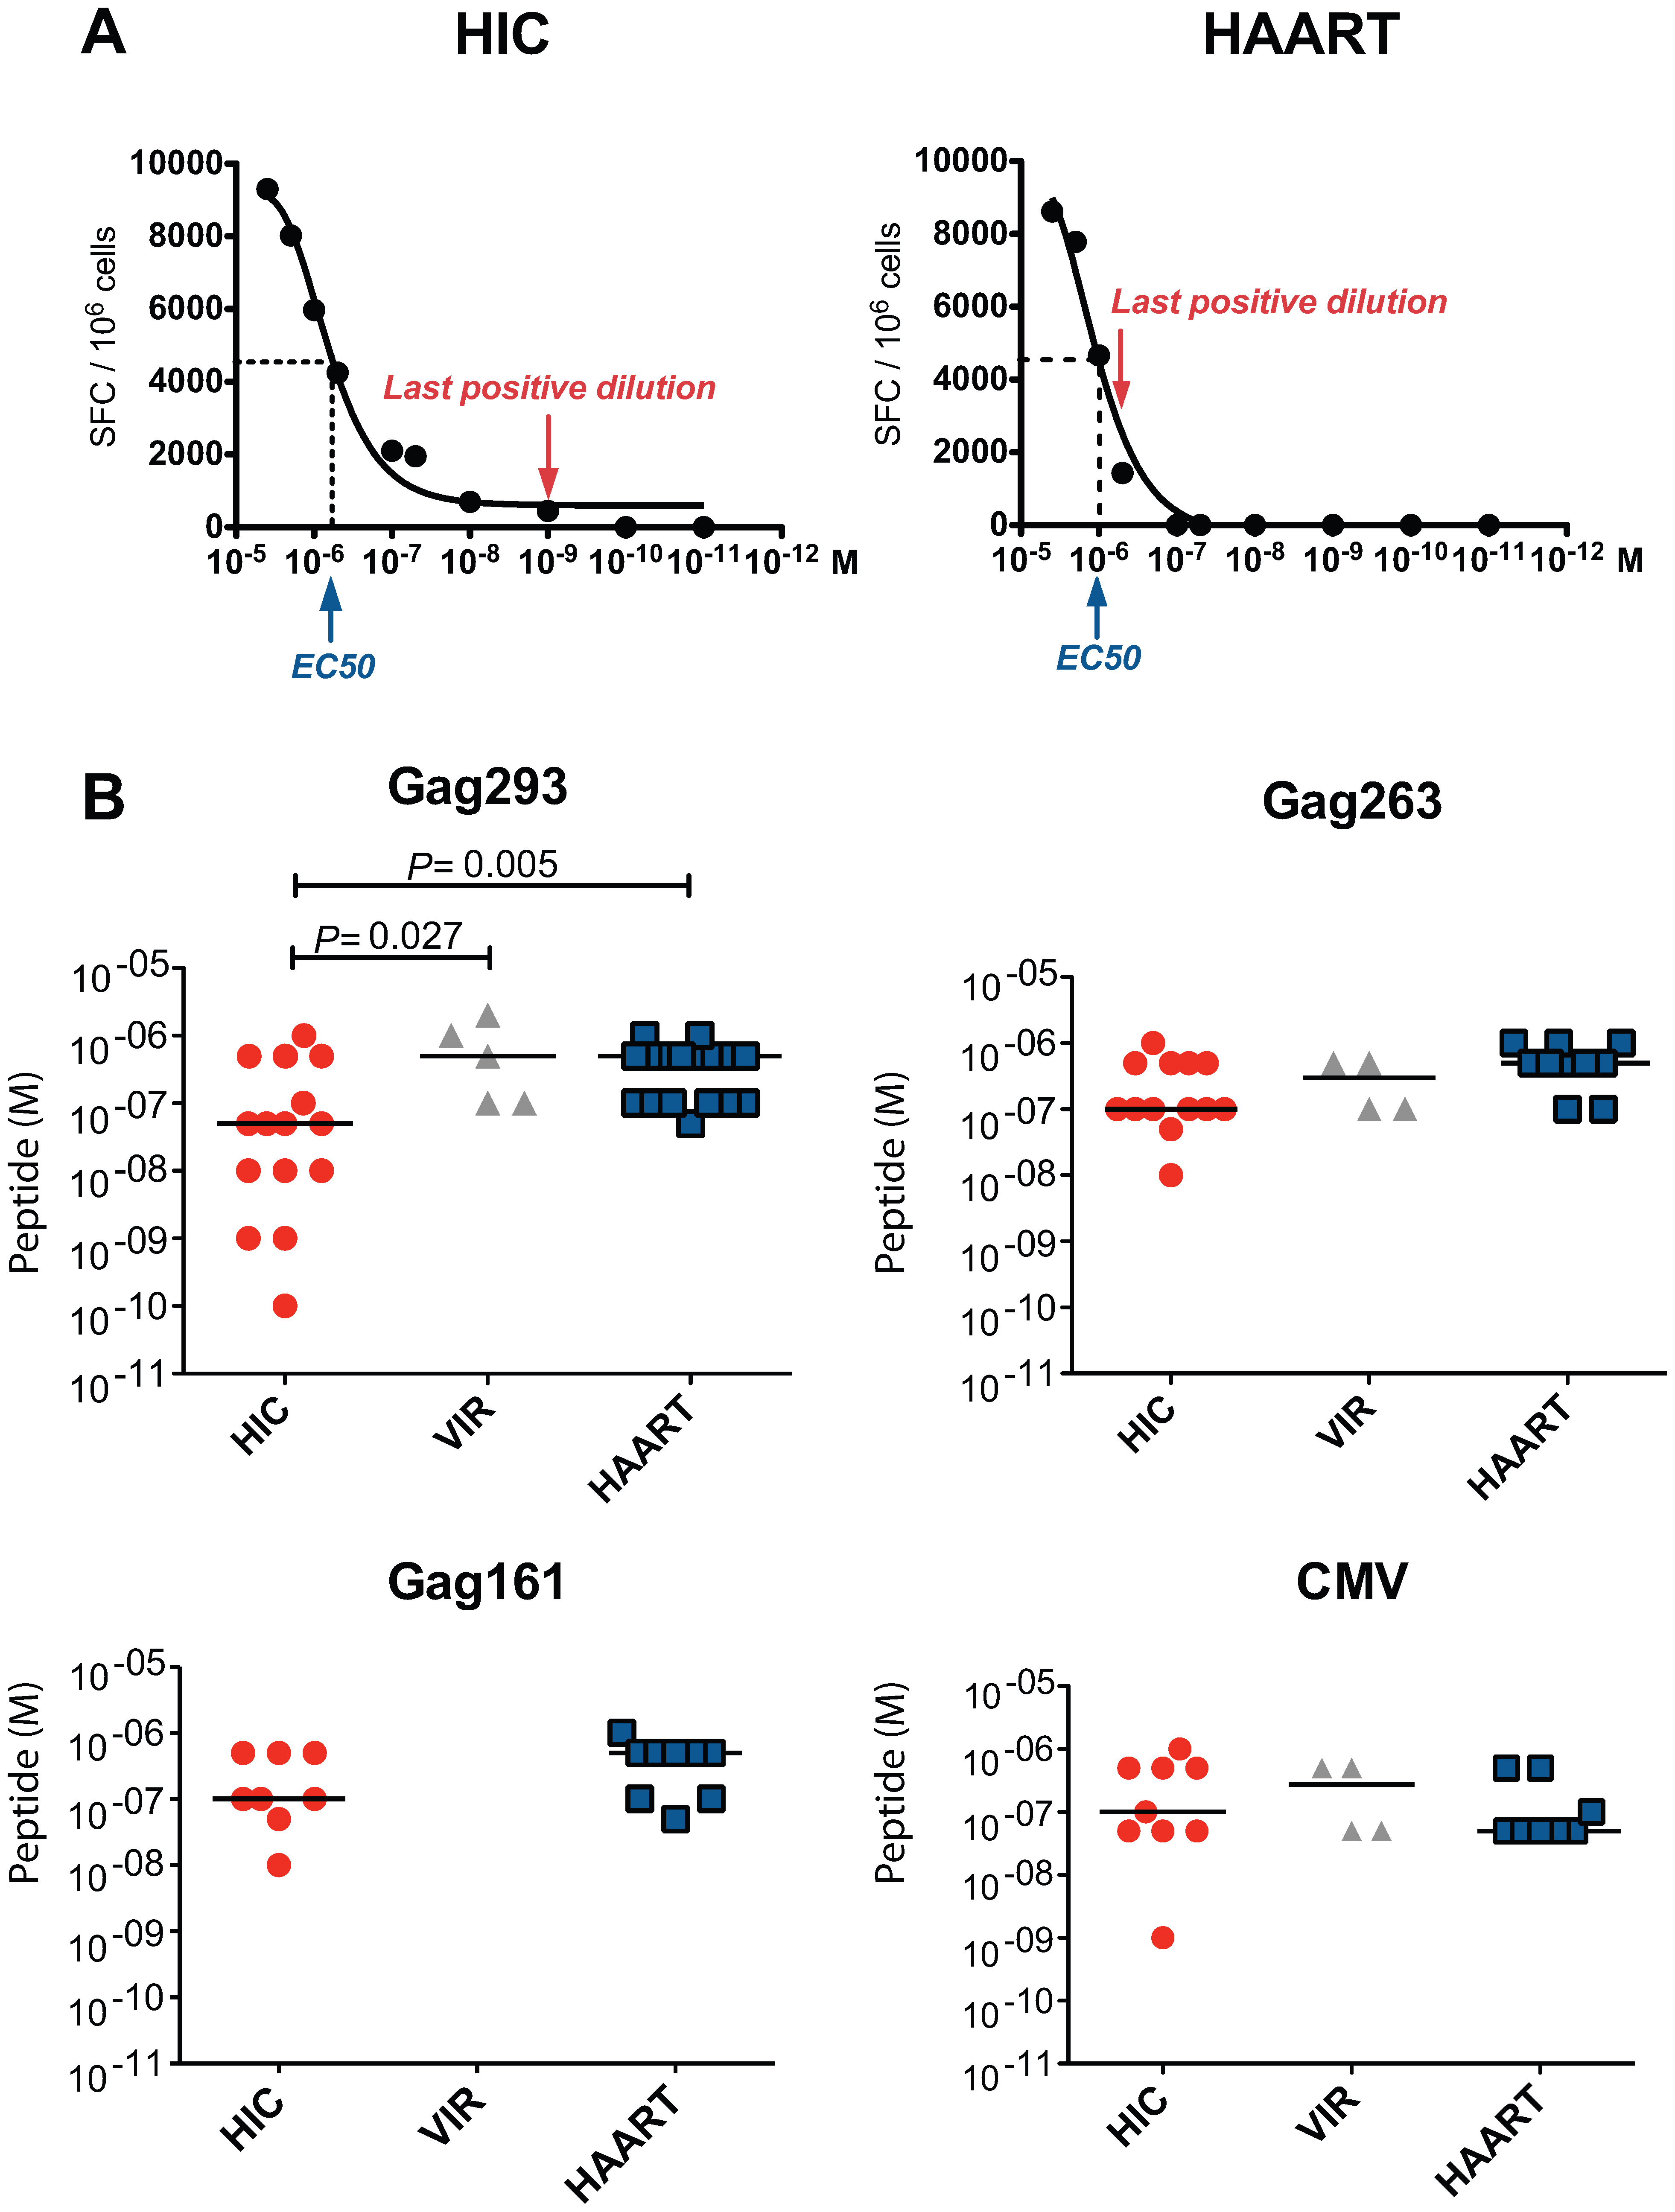 Increased functional avidity of memory CD4+ T cells from HIV controllers.